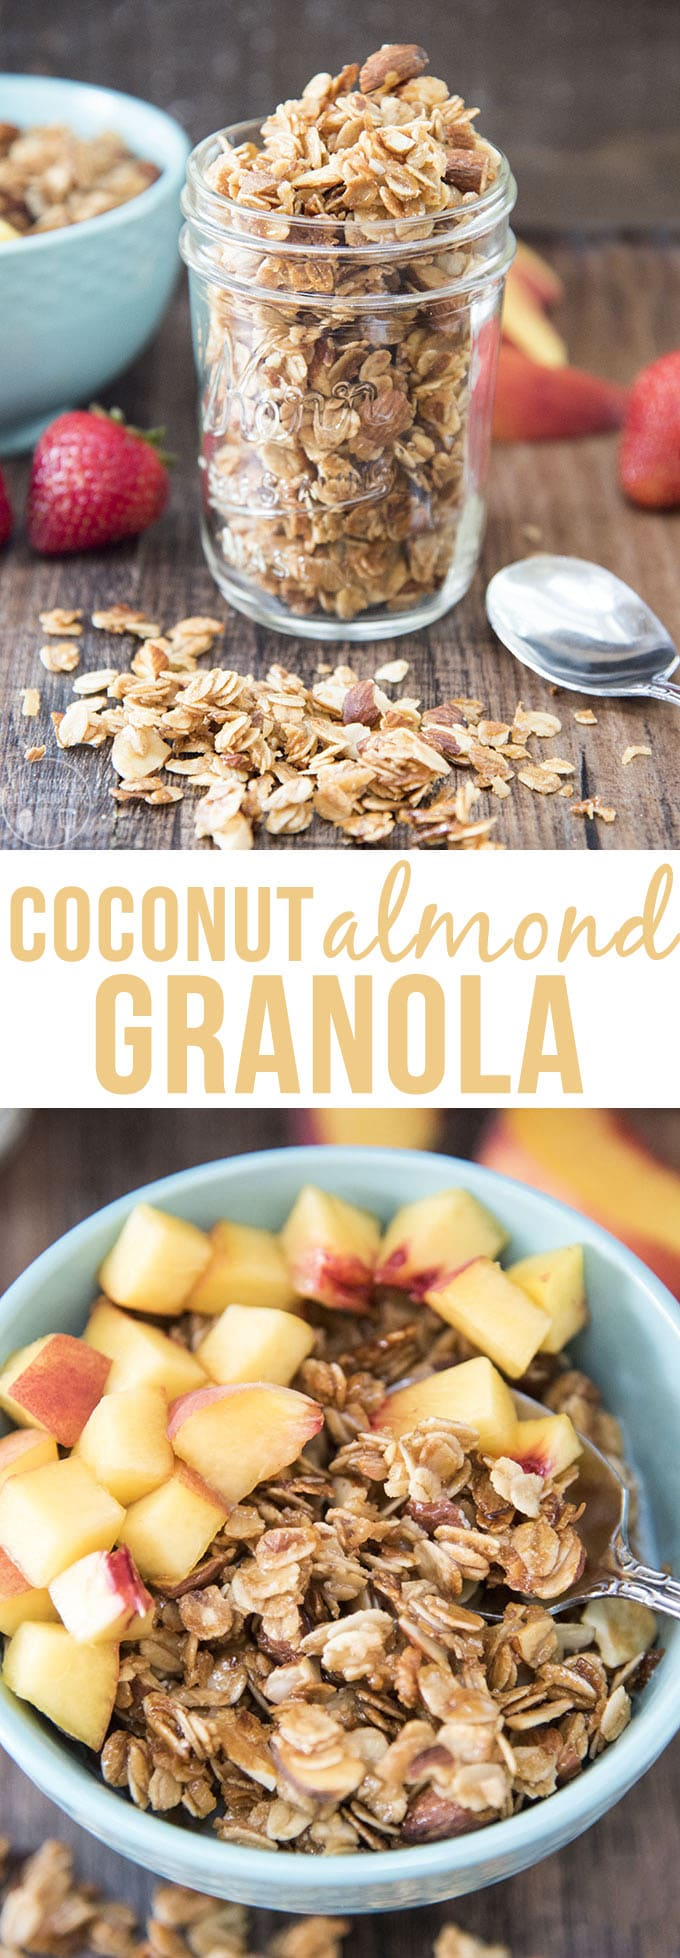 This coconut almond granola is a delicious sweet, crunchy granola, bursting full of flavor. Its perfect with milk, fruit, or yogurt, or delicious plain for a quick breakfast or snack!